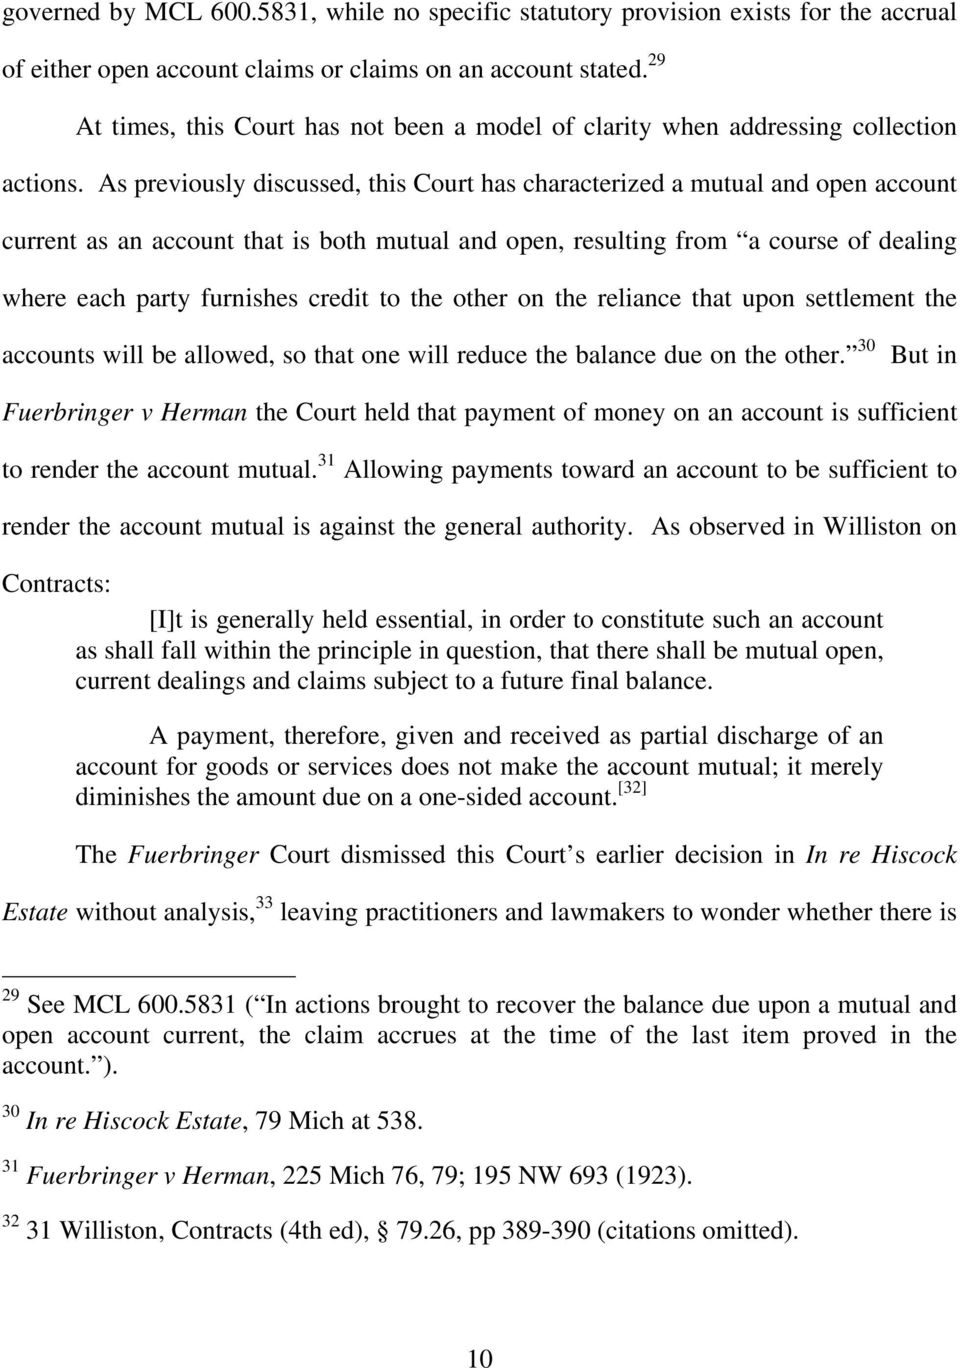 As previously discussed, this Court has characterized a mutual and open account current as an account that is both mutual and open, resulting from a course of dealing where each party furnishes